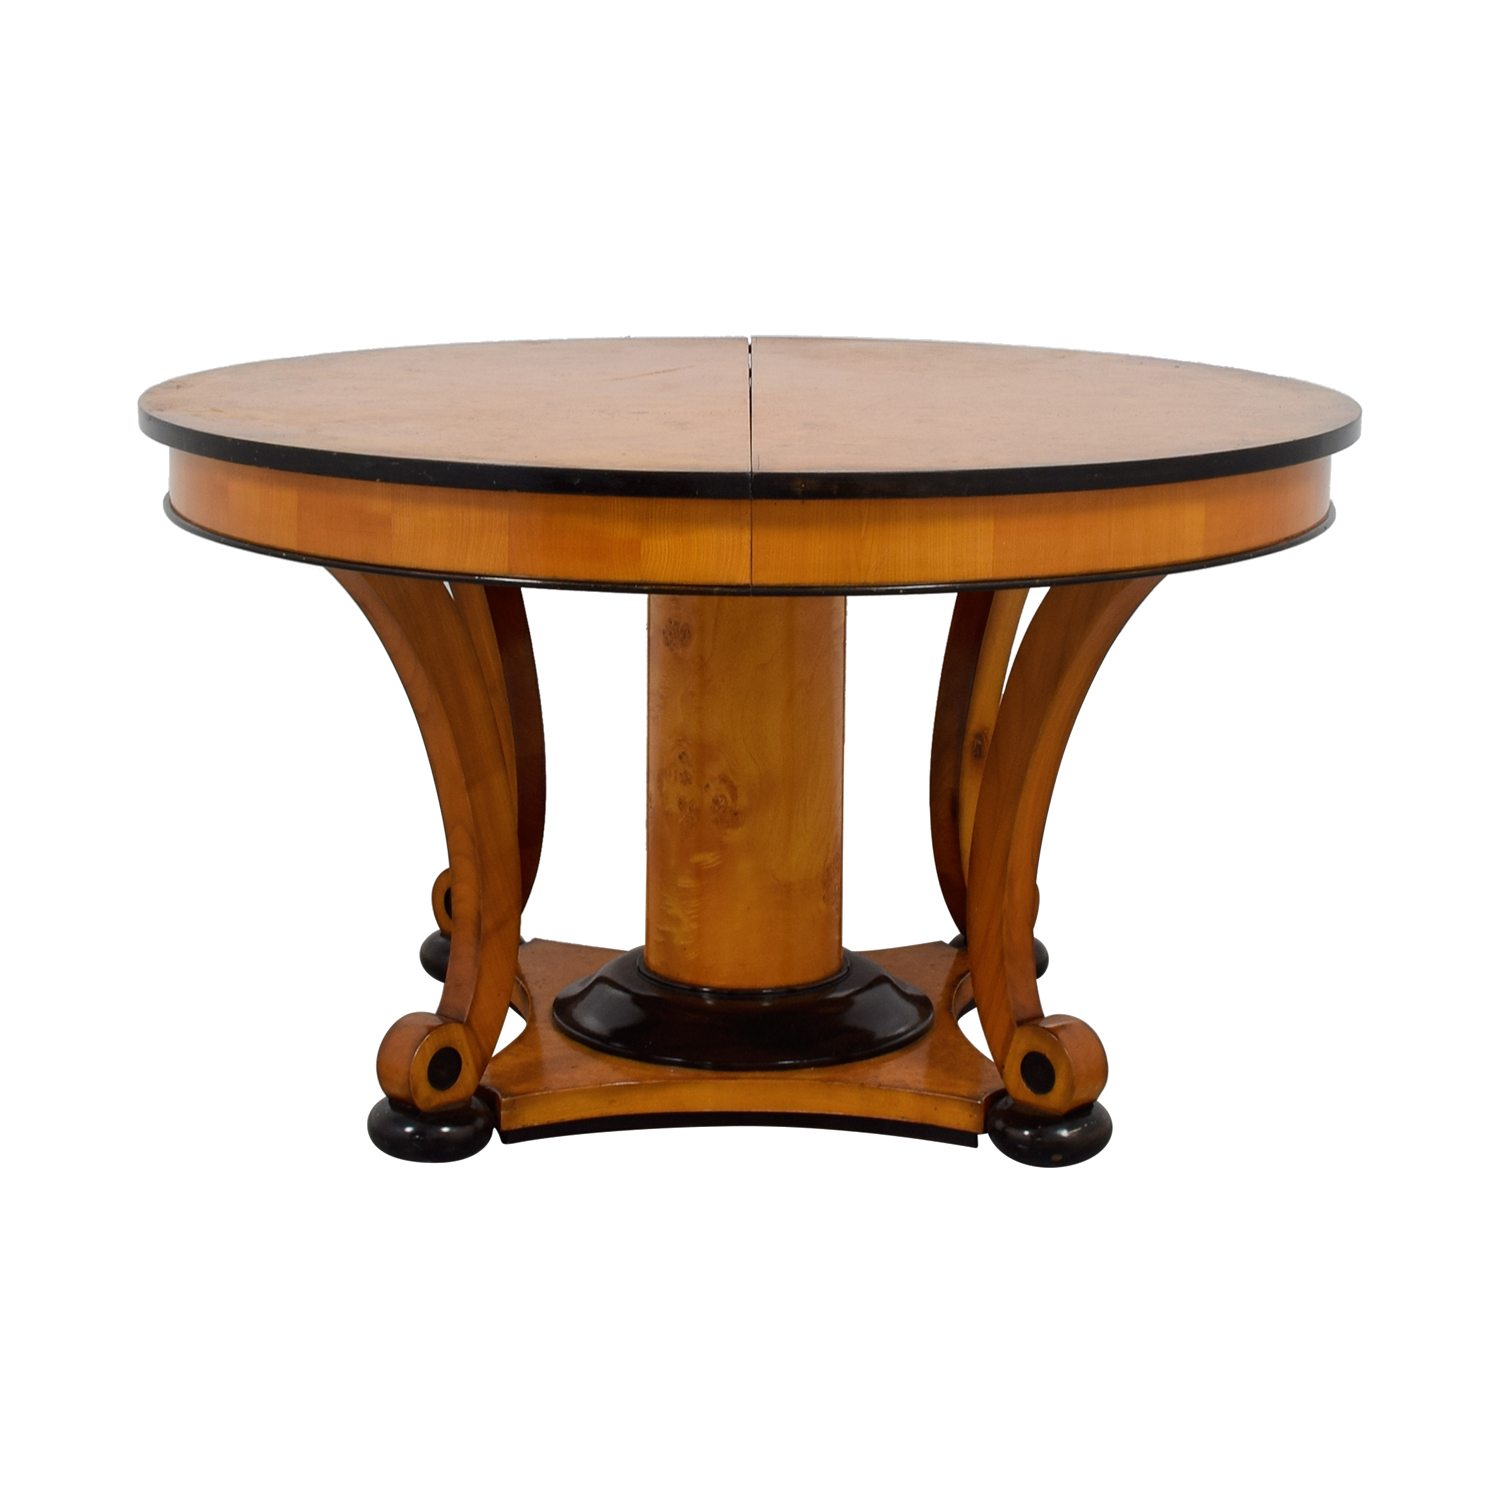 Bloomingdale's Bloomingdale's Beidermeider Round Cherry Wood  Dining Table